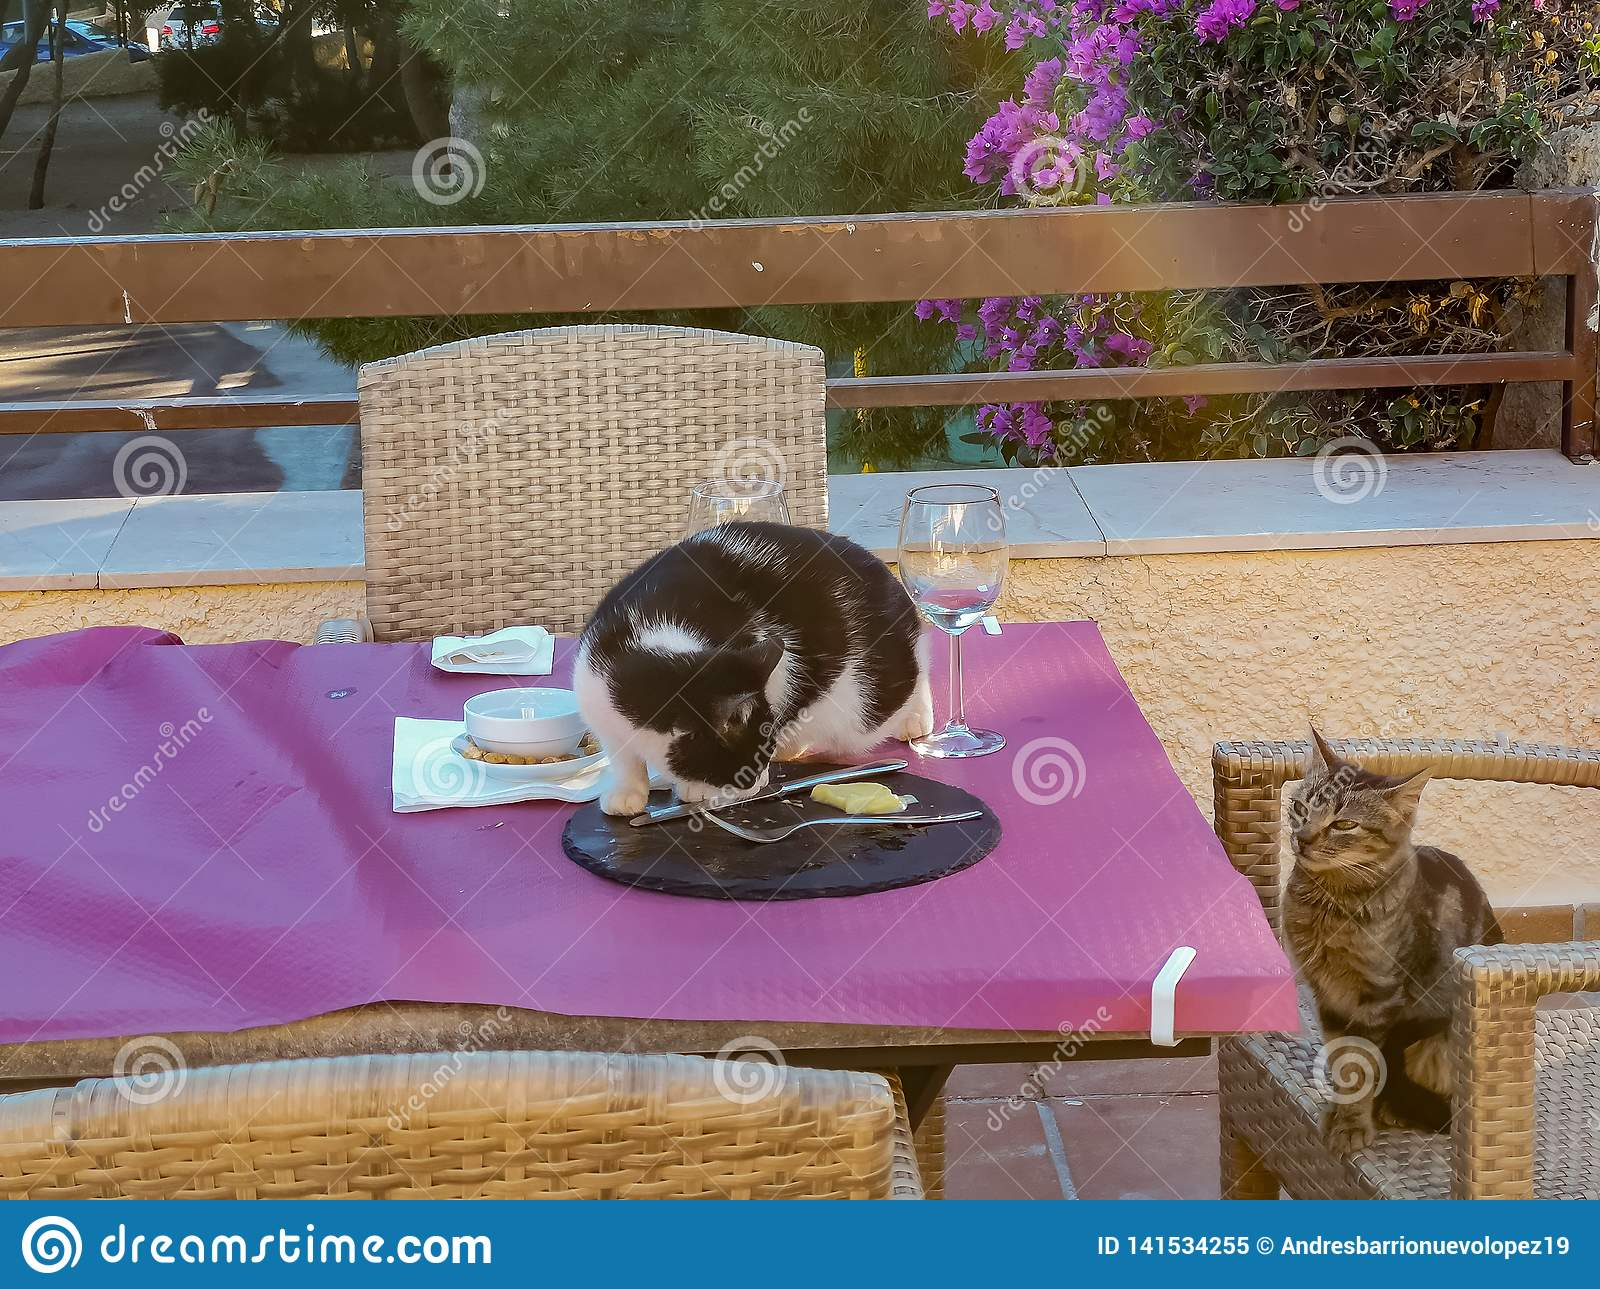 Cats chipping food off a table